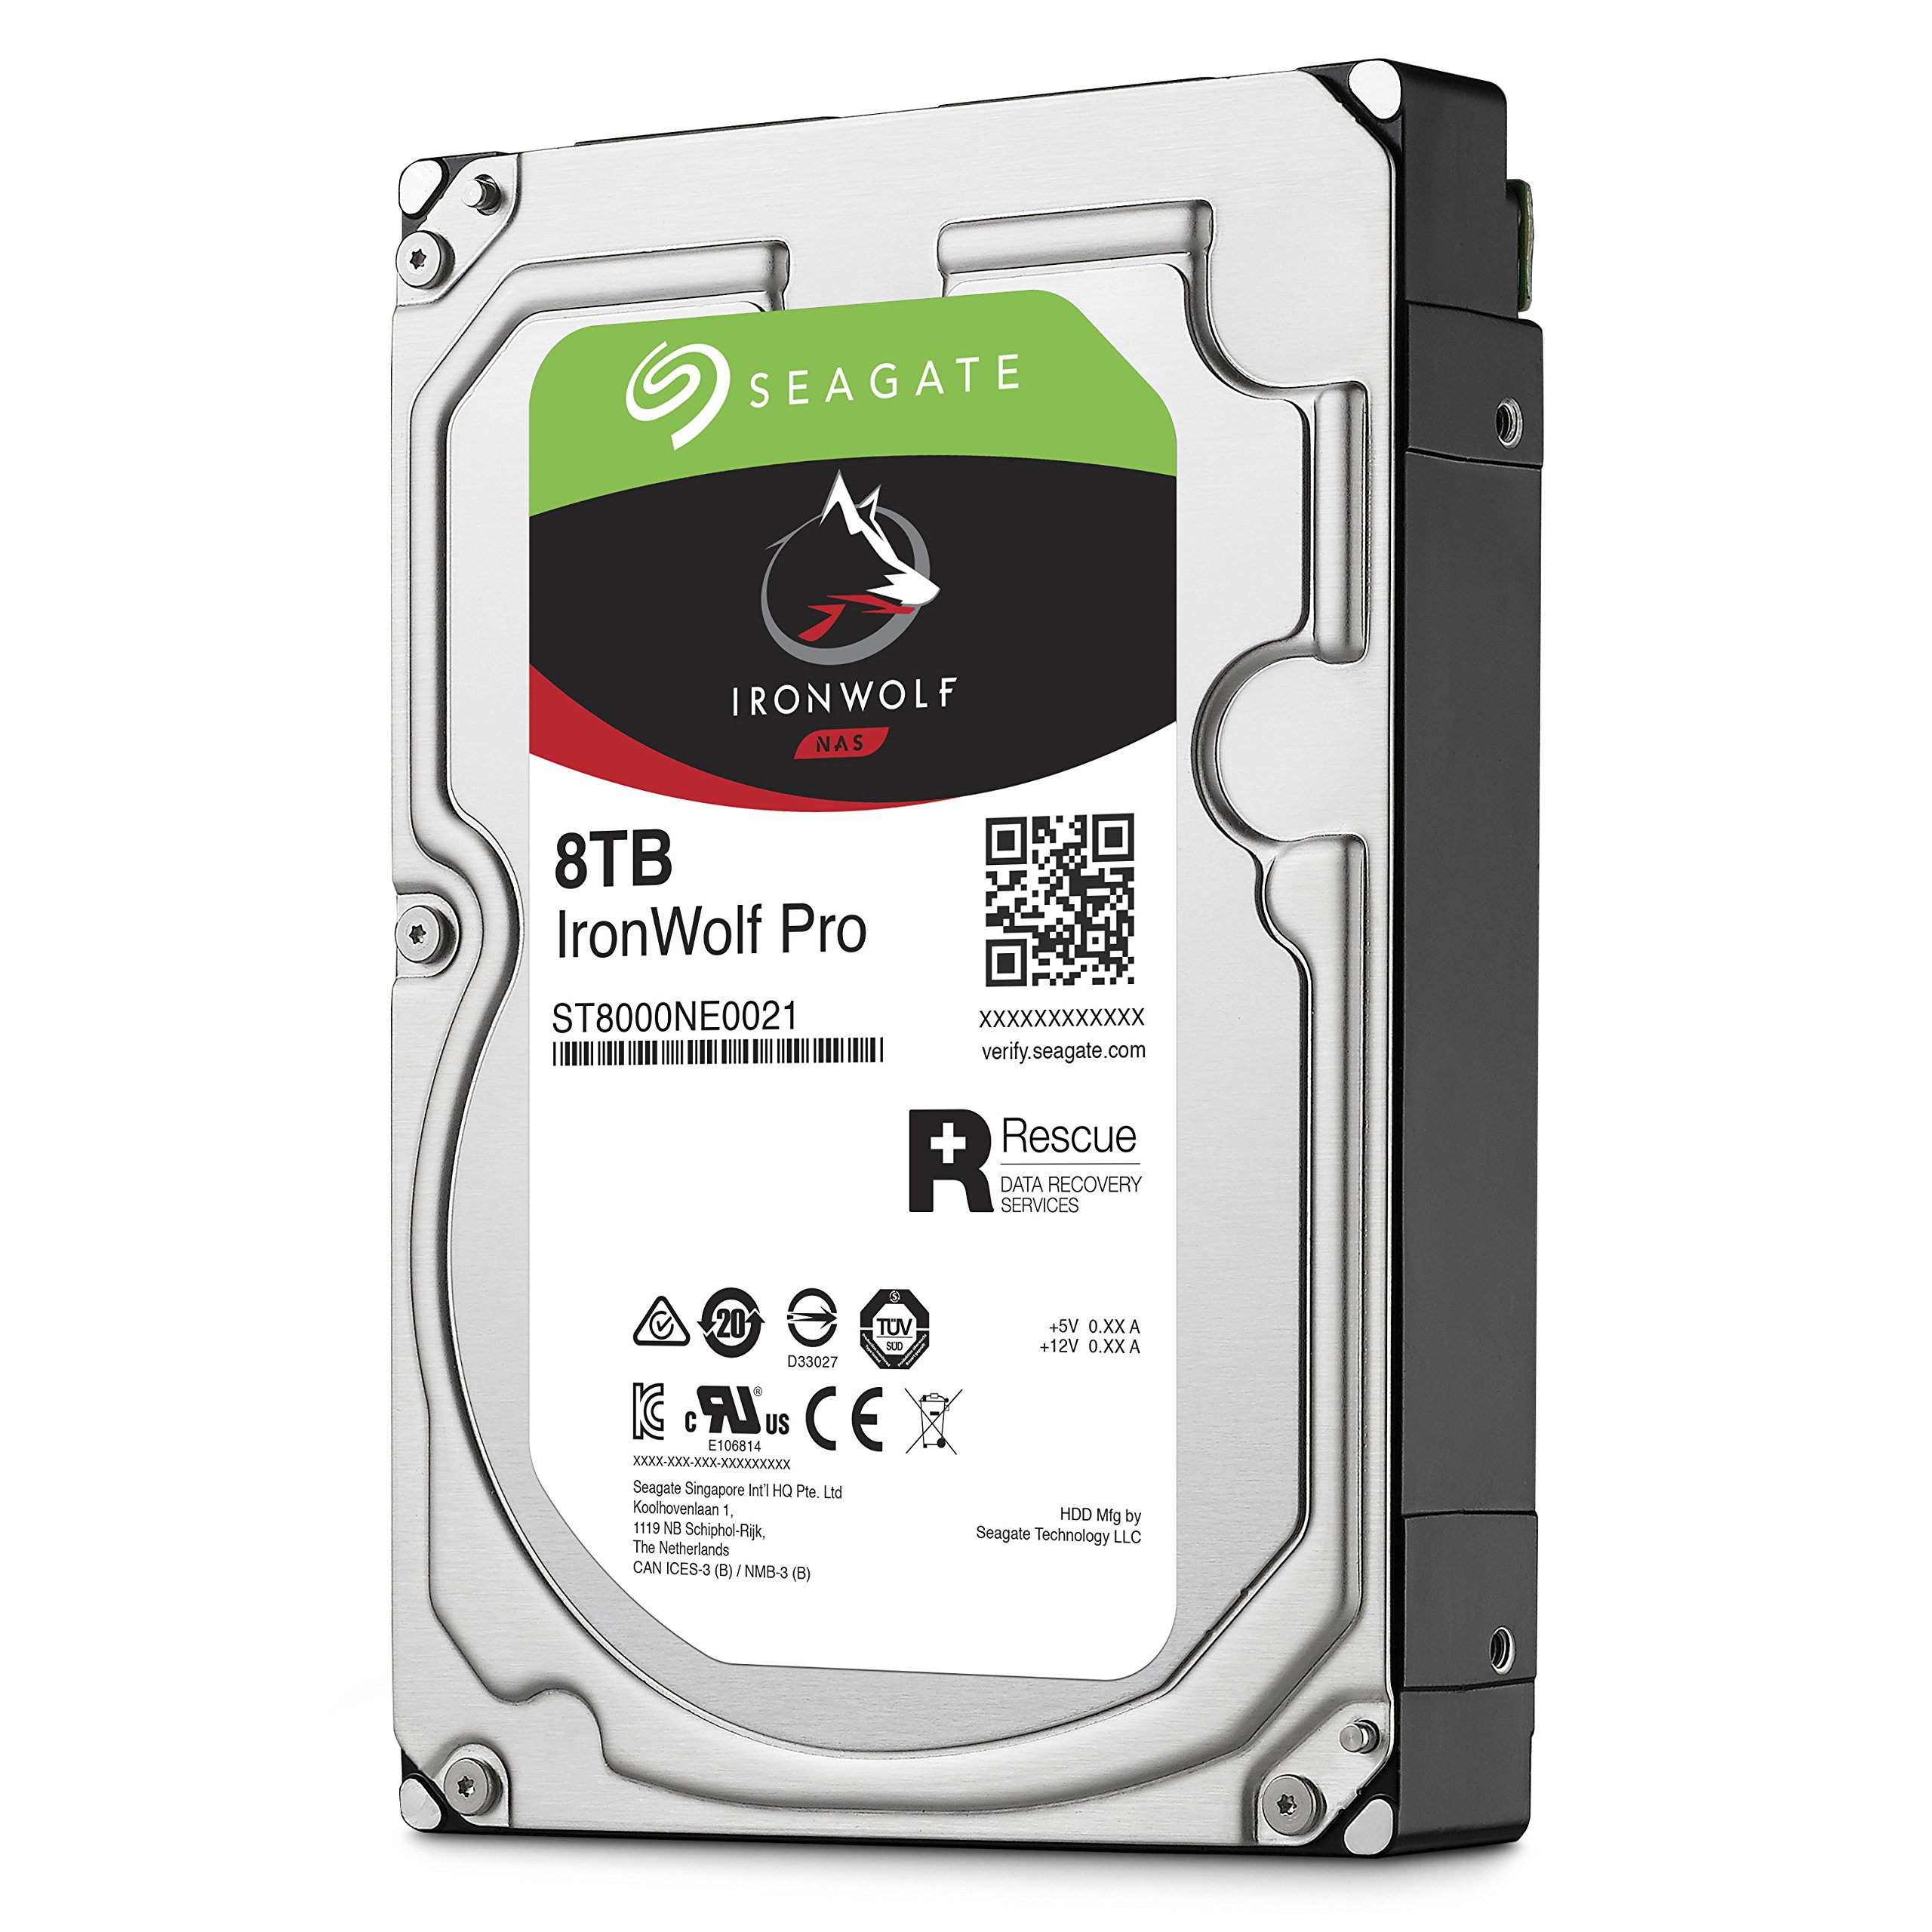 Tempat Jual Seagate Barracuda Hard Disk Internal 2 Tb 35 Inch Sata Police 14685jsb 61 Hitam Ironwolf Pro 8 Drive For 1 16 Bay